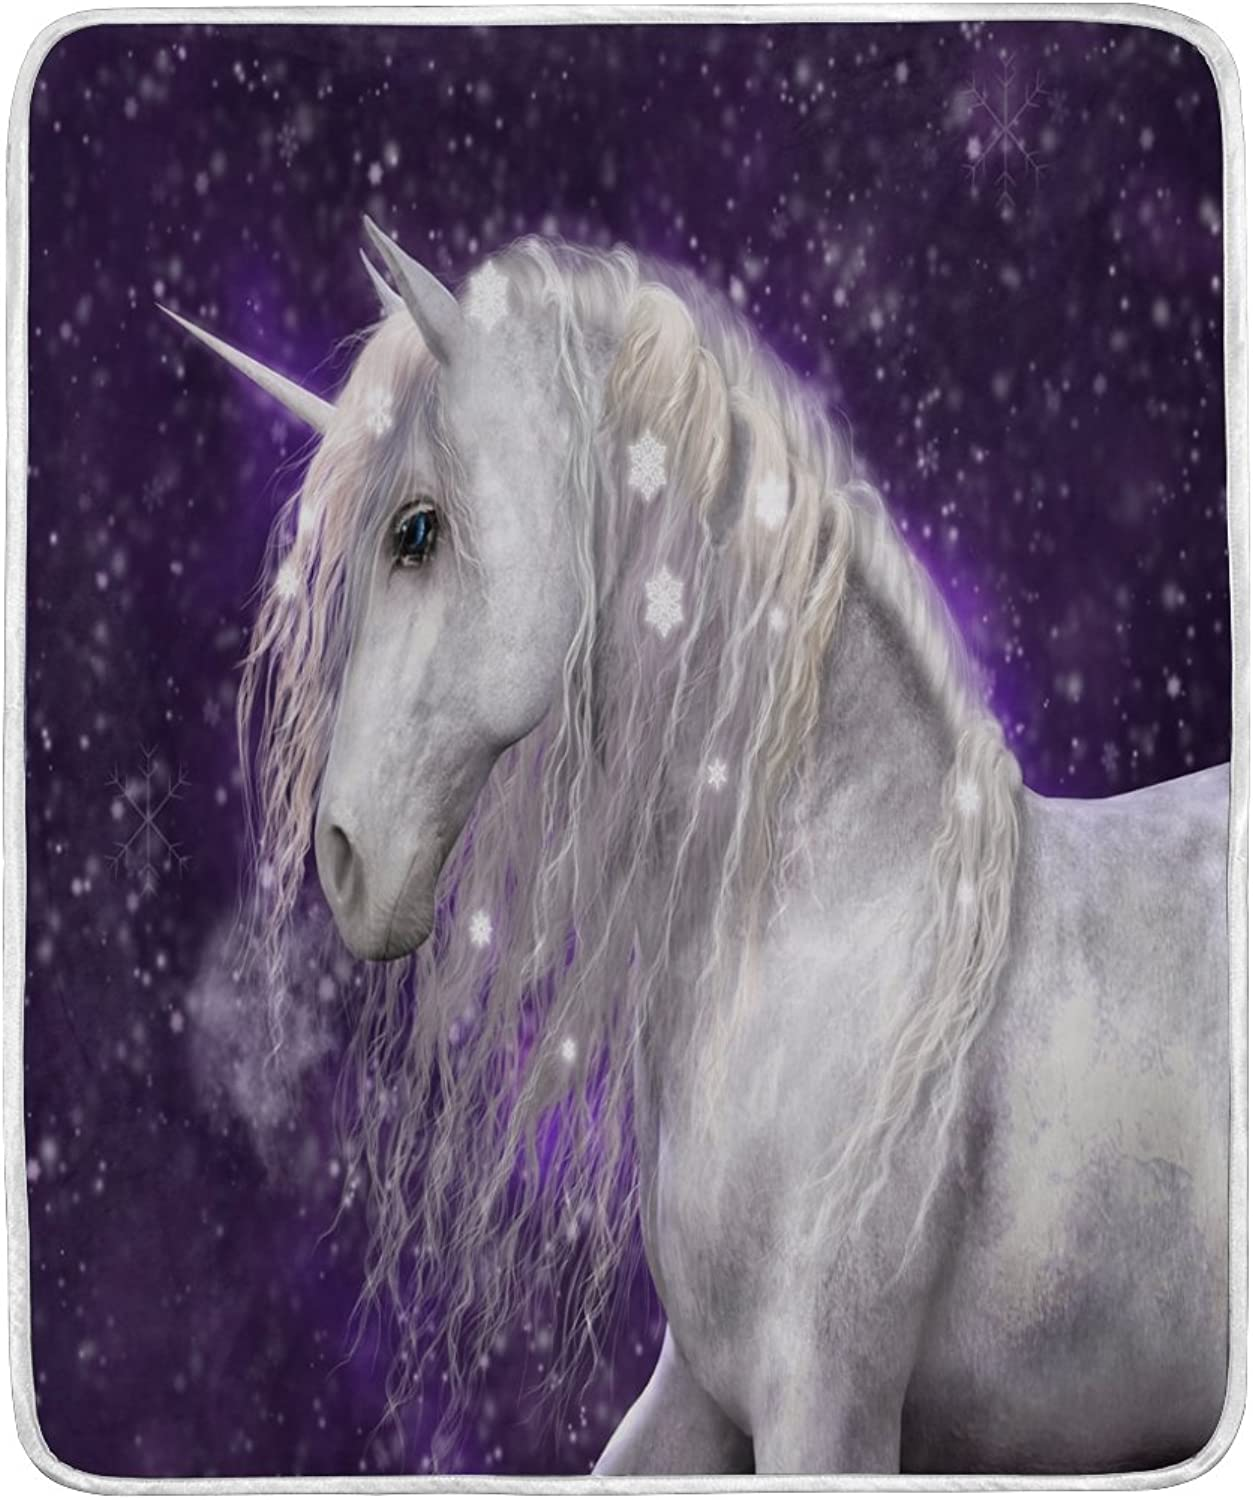 ALAZA Home Decor Purple Star White Unicorn Blanket Soft Warm Blankets for Bed Couch Sofa Lightweight Travelling Camping 60 x 50 inch Throw Size for Kids Boys Women